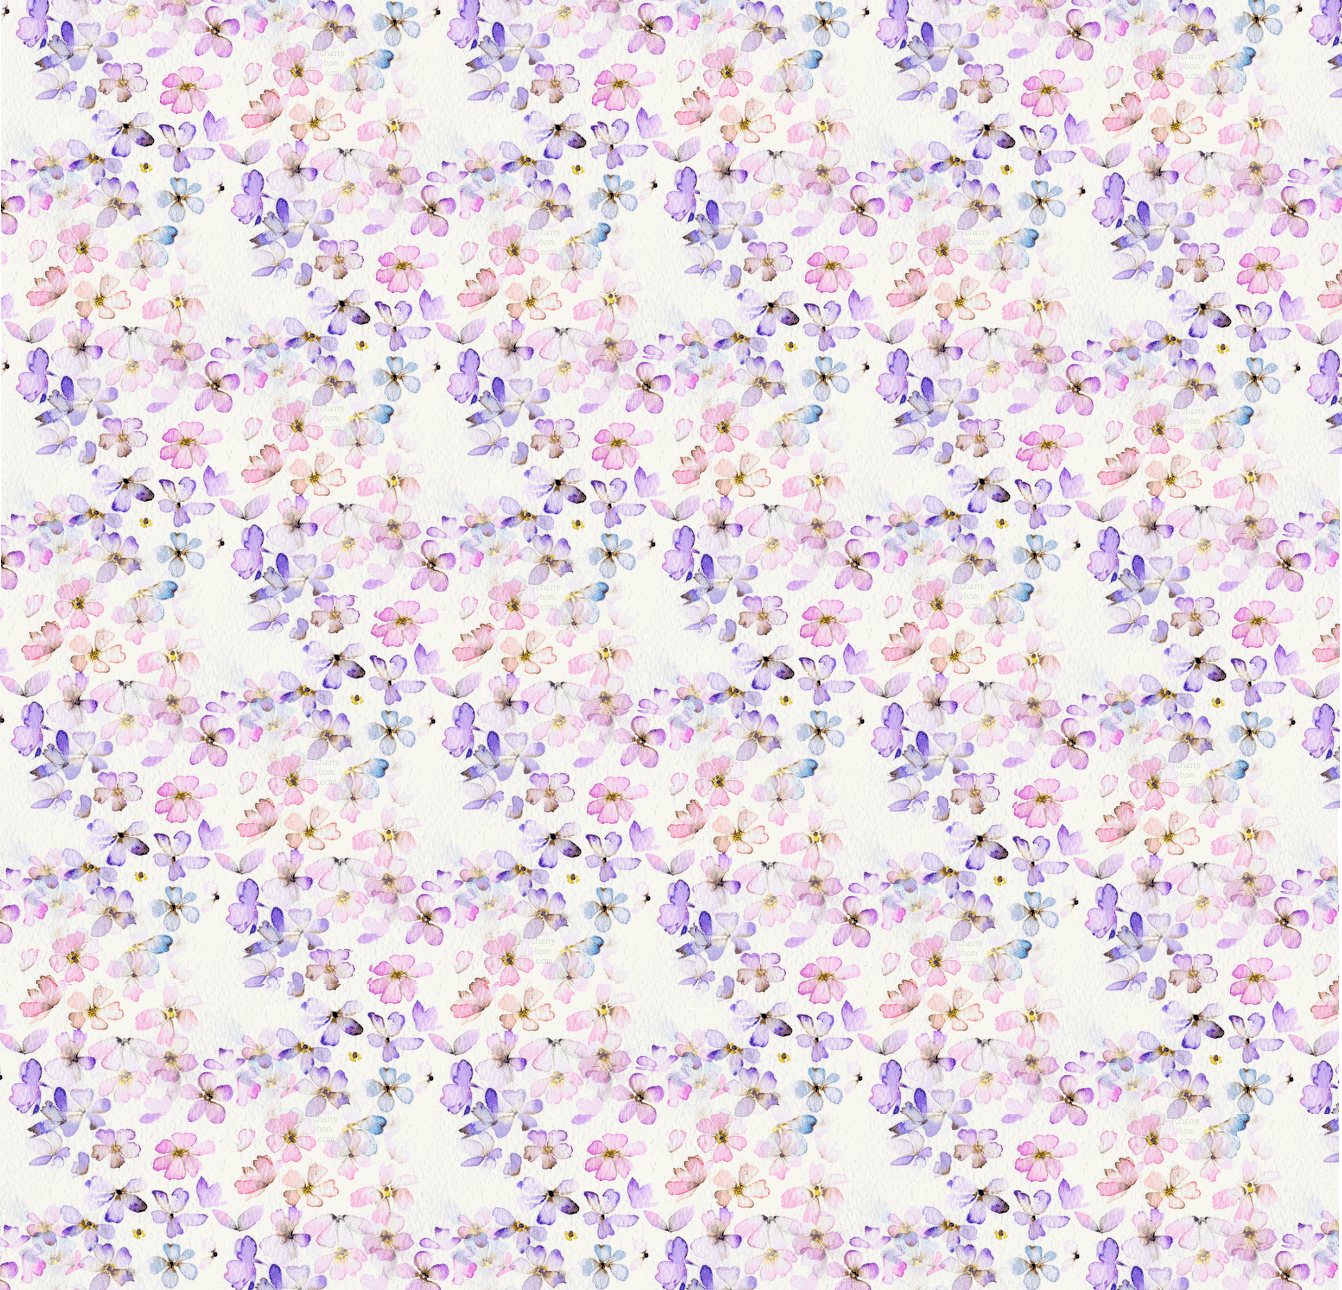 Free Download Displaying 16 Images For Flower Print Wallpaper